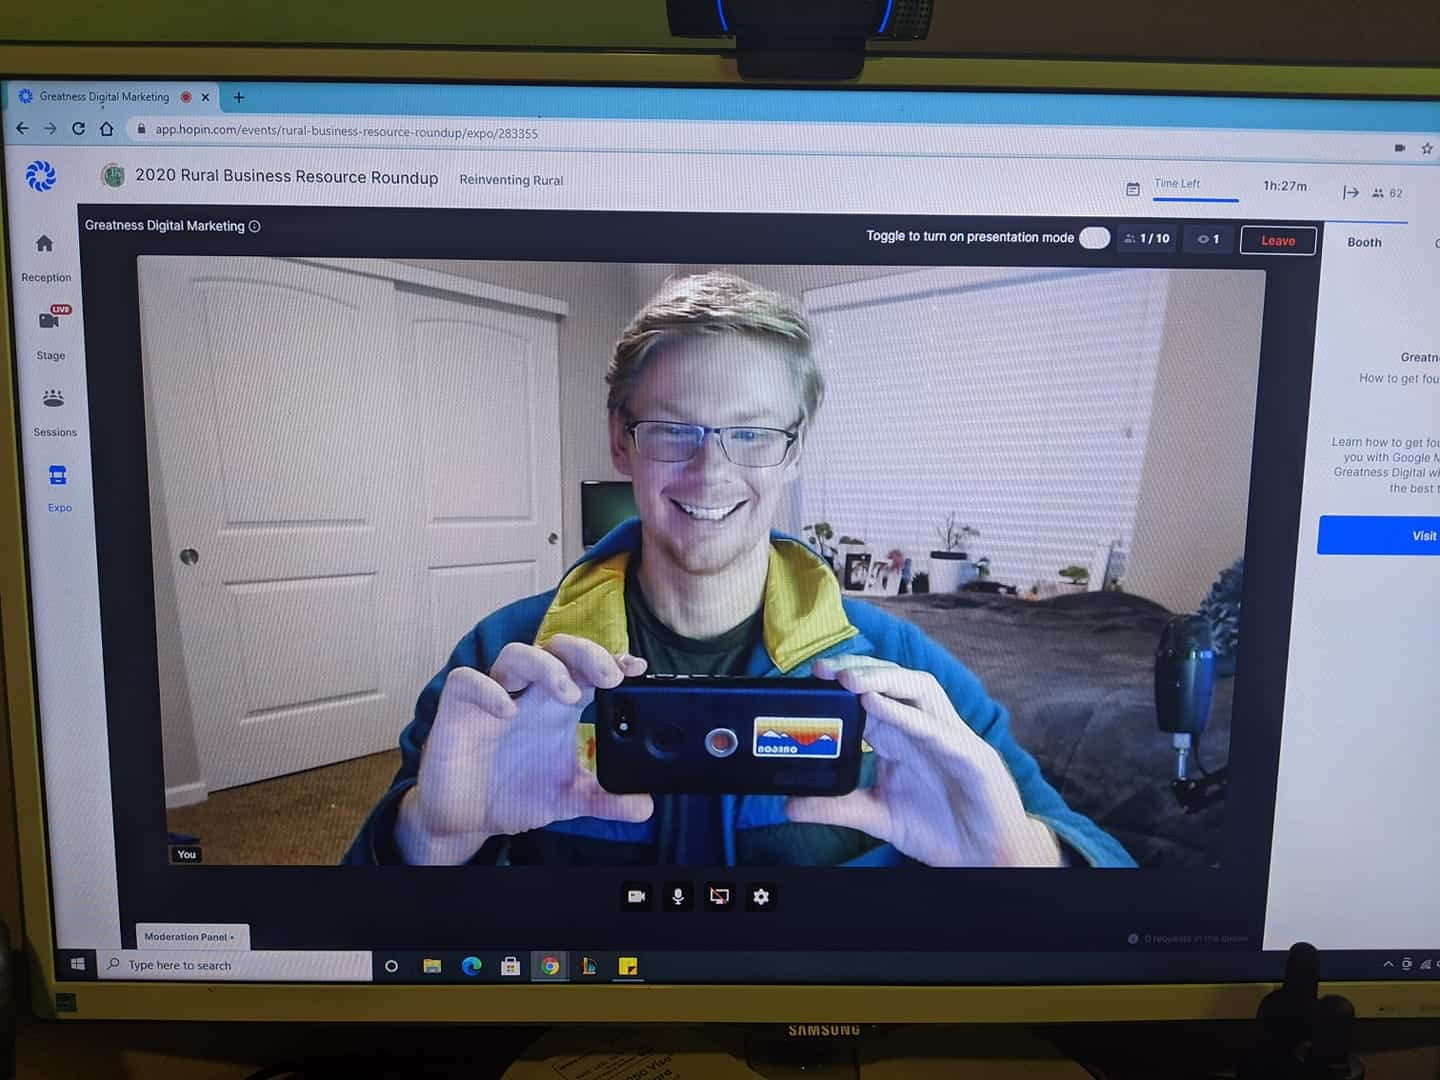 selfie photo during virtual event for small businesses